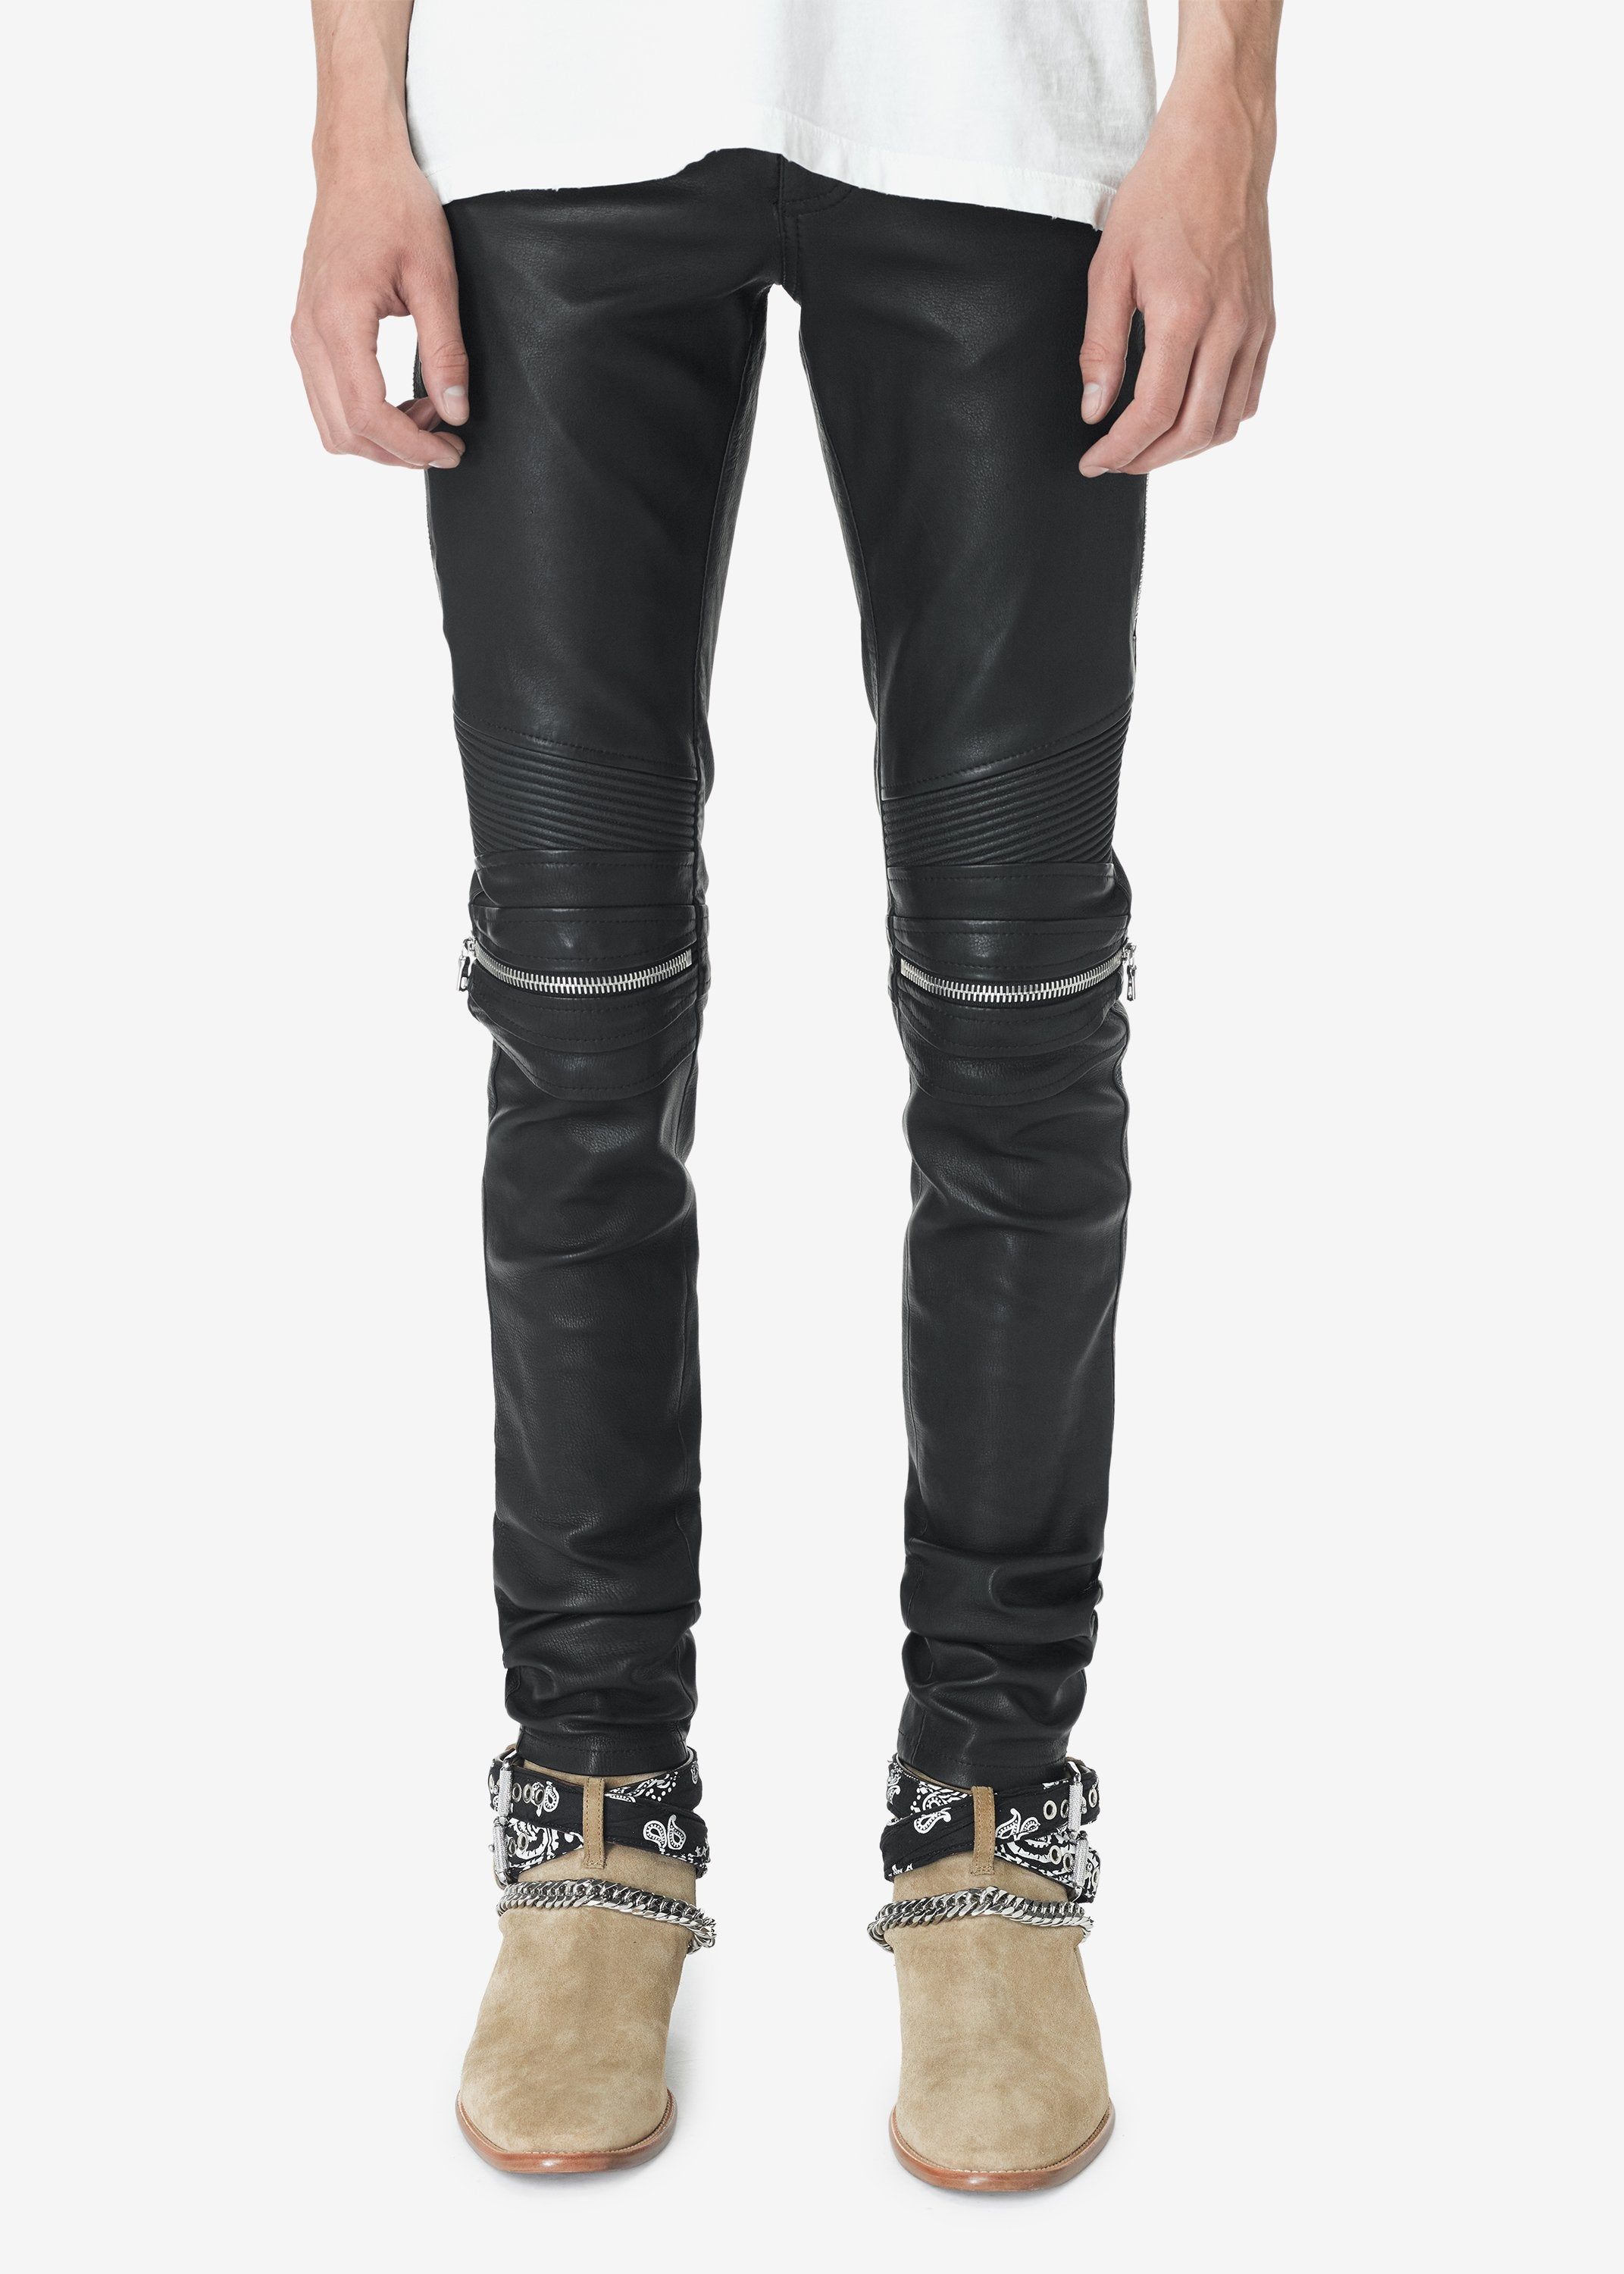 mx2-leather-pants-black-silver-image-1